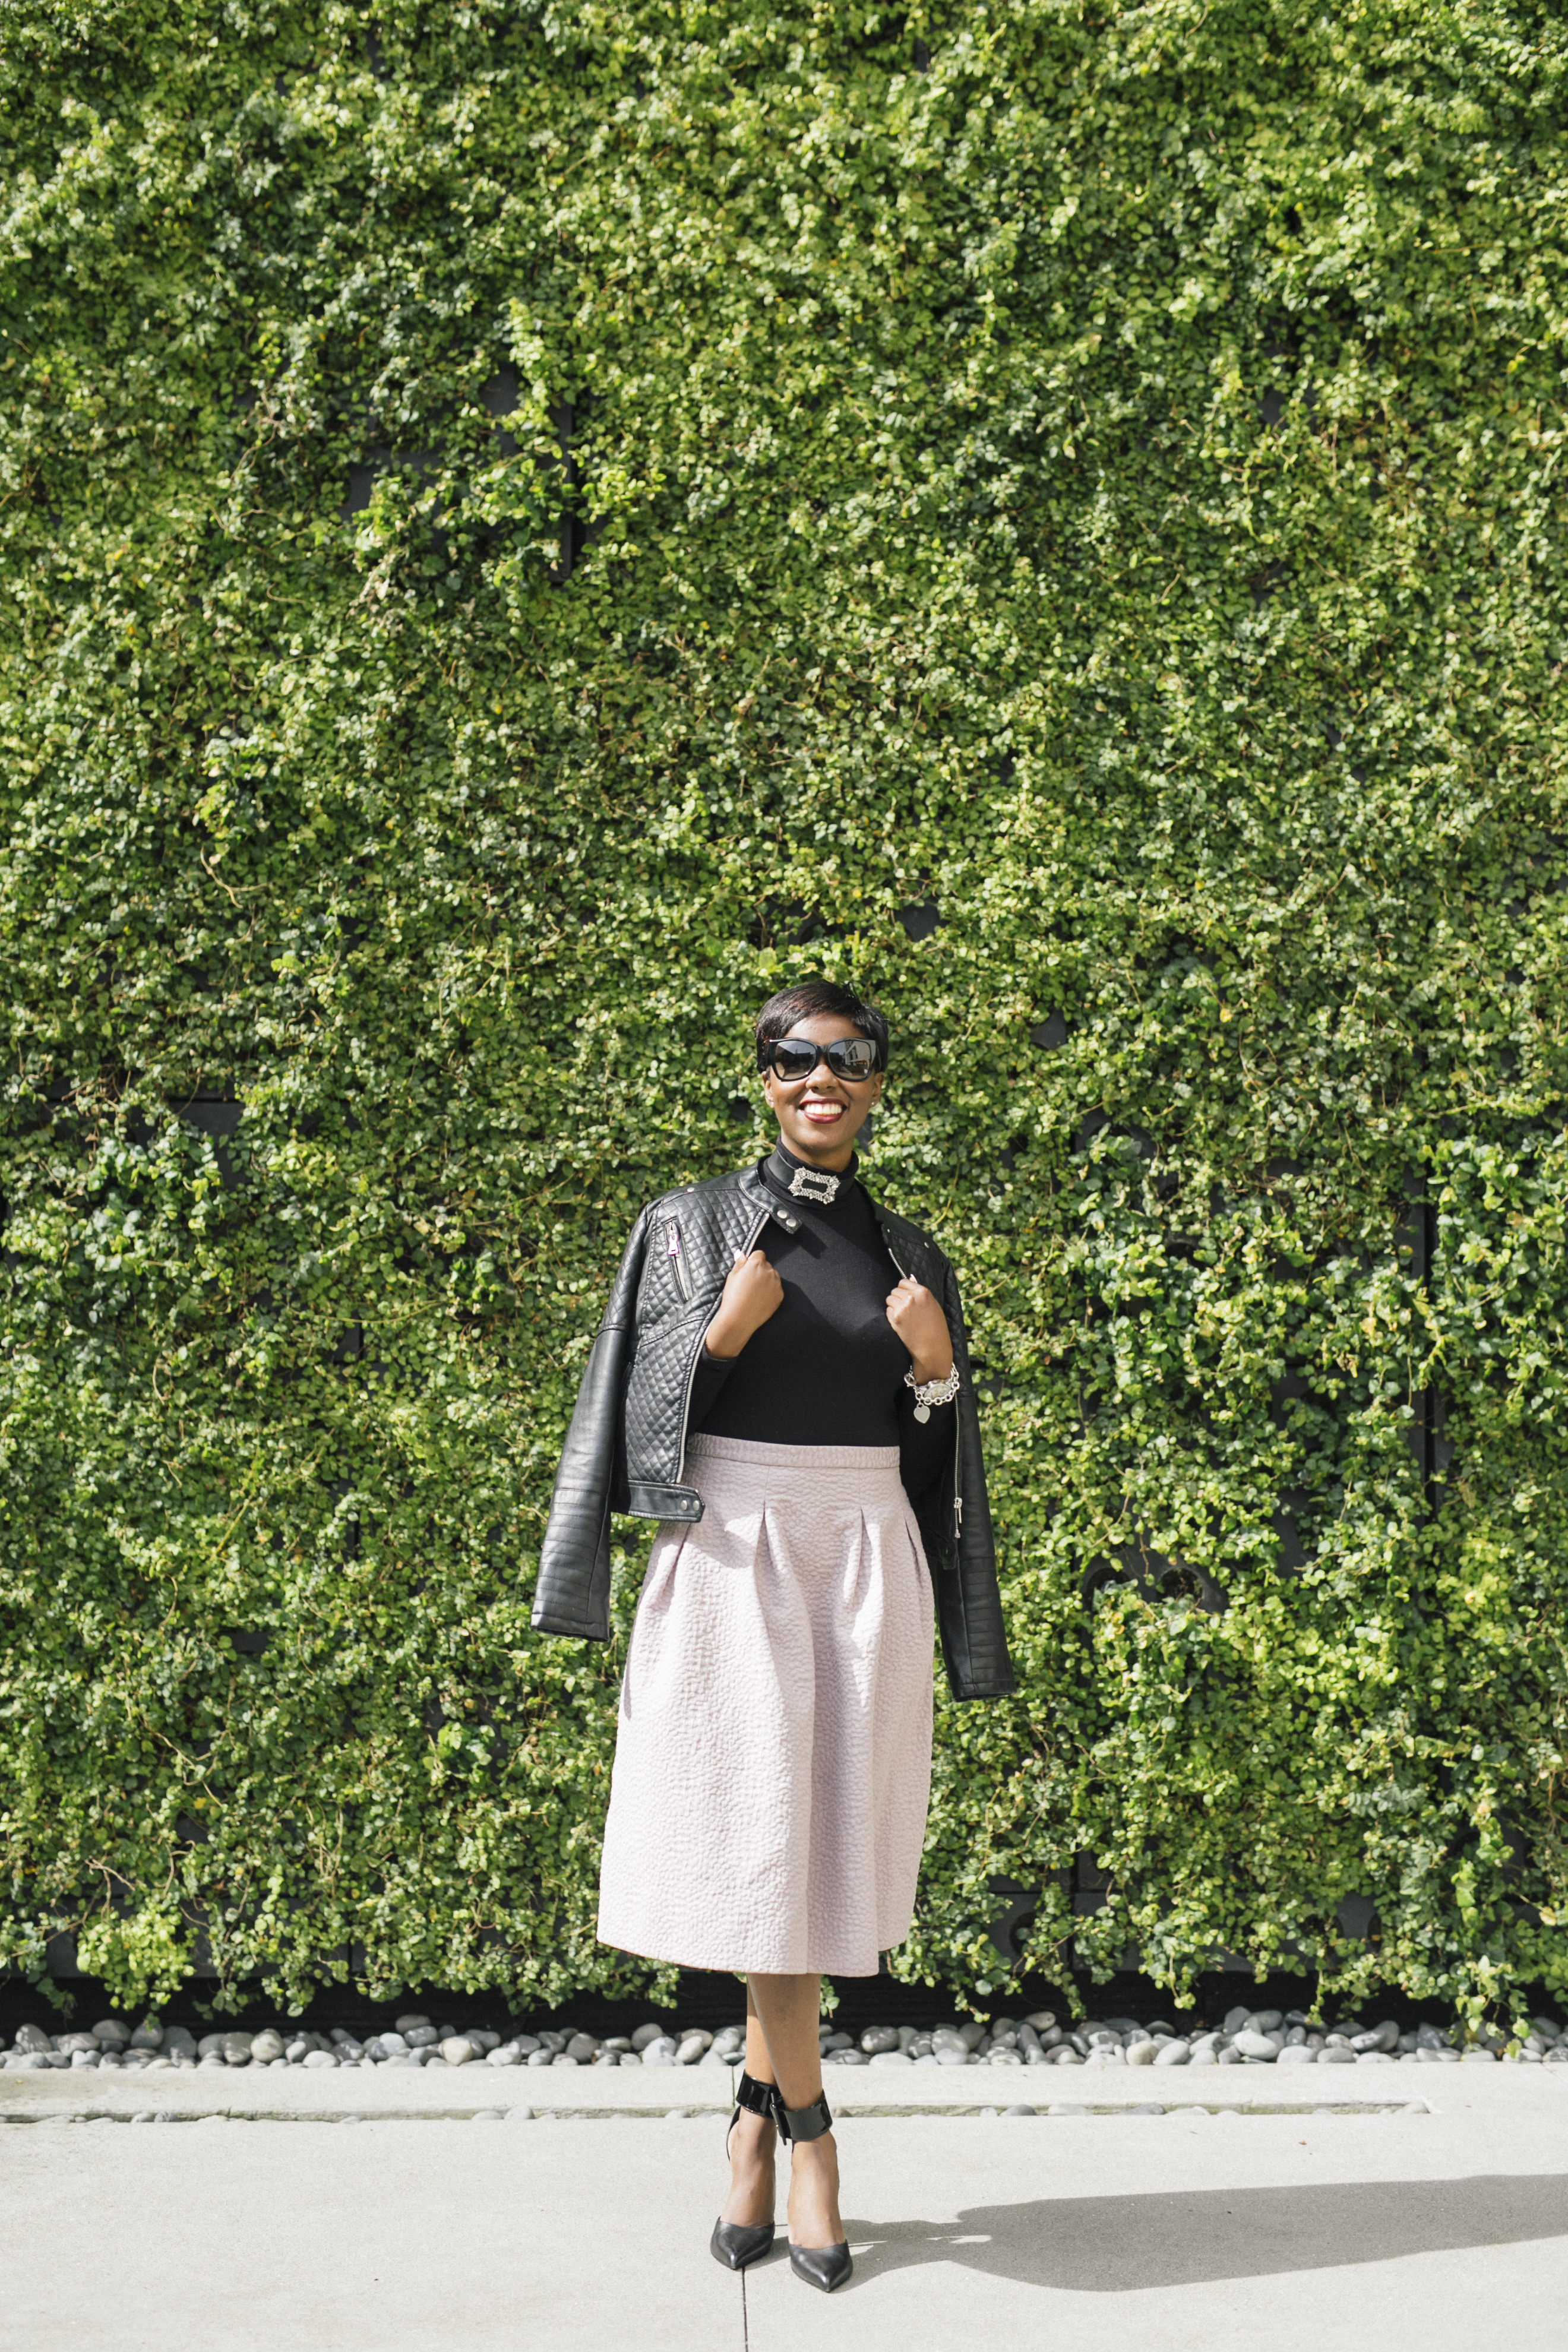 Life Unplugged Tom Ford Sunglasses Shop Tempest Choker ASOS Black Turtleneck Bodysuit H&M Mauve Full Midi Skirt Black Faux Leather Jacket Saint Laurent Ankle Cuff Pumps San Francisco Sf Fashion Style Blog Blogger